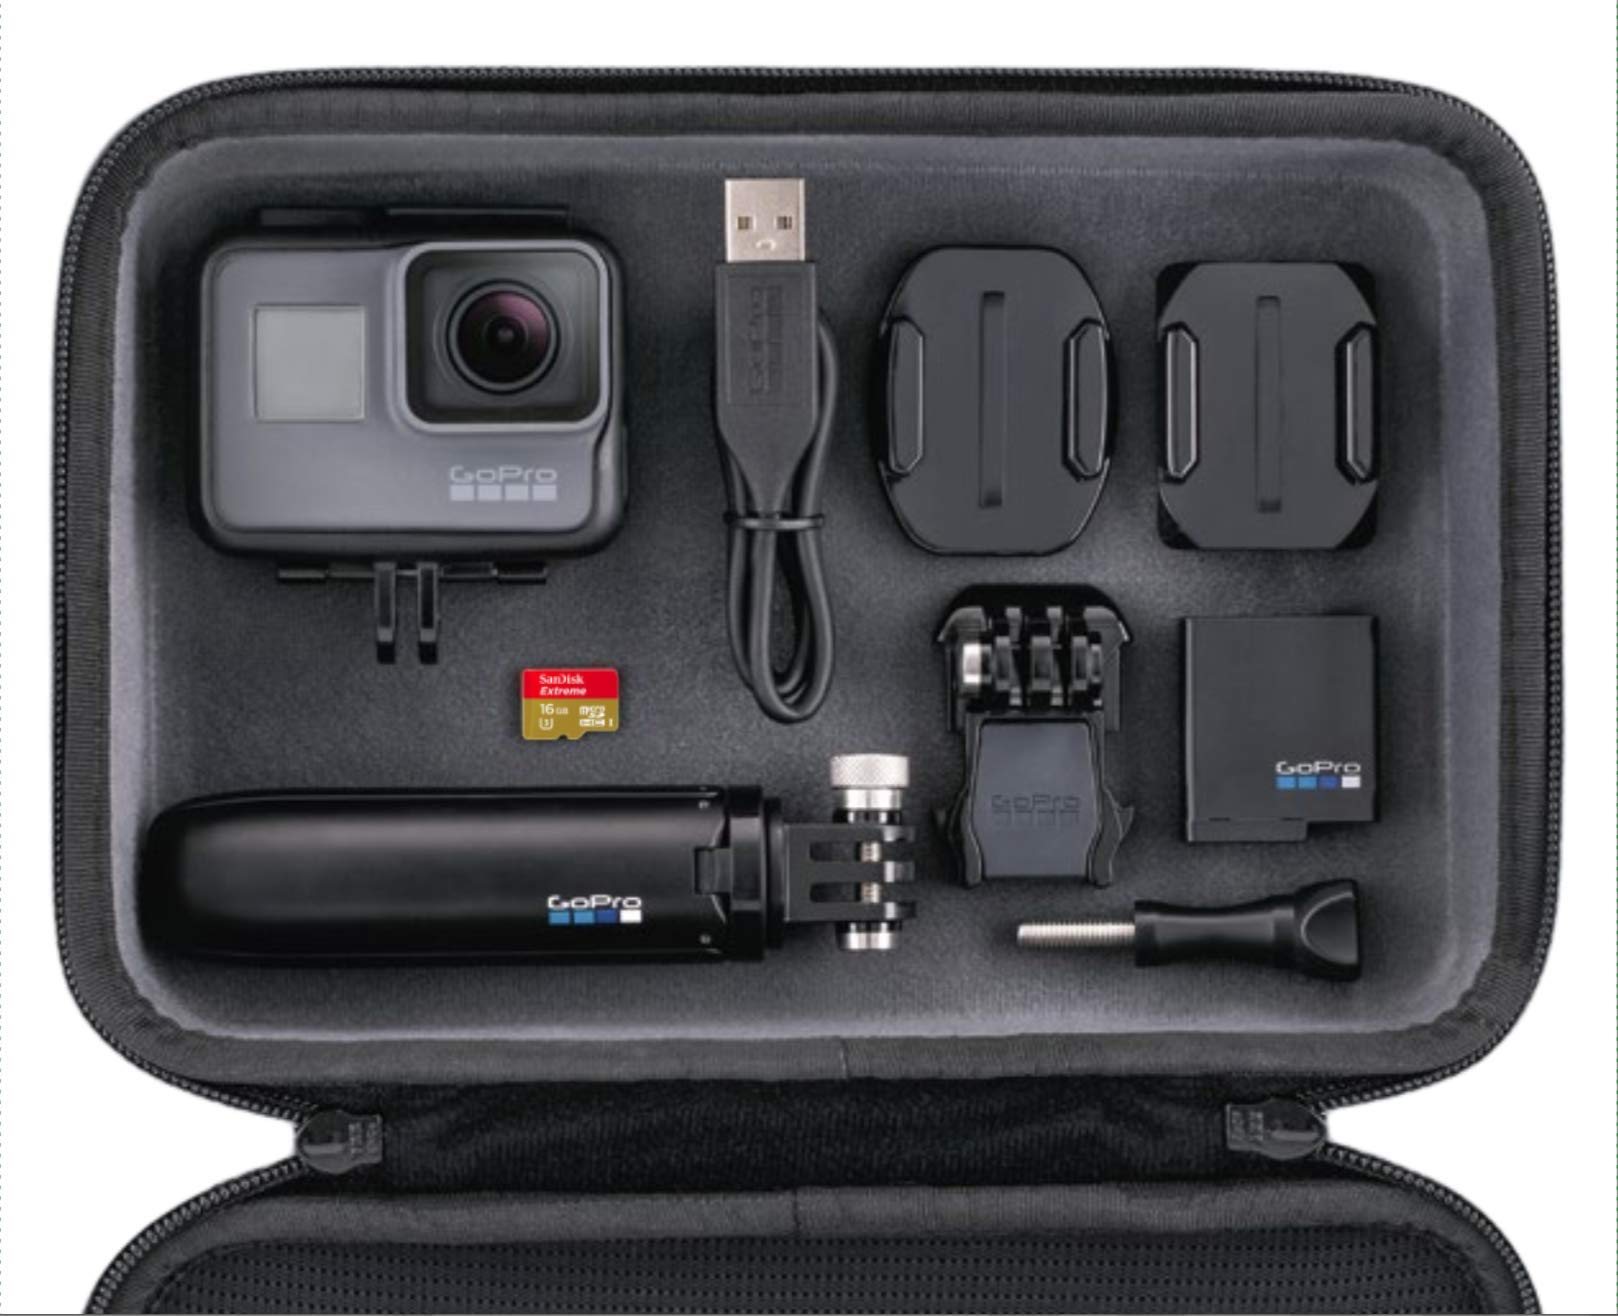 GoPro HERO5 Black - fotocamera digitale impermeabile fino a 10m, 4K, 30 fps + Shorty + Casey + MicroSD da 16 GB -  Nero product image